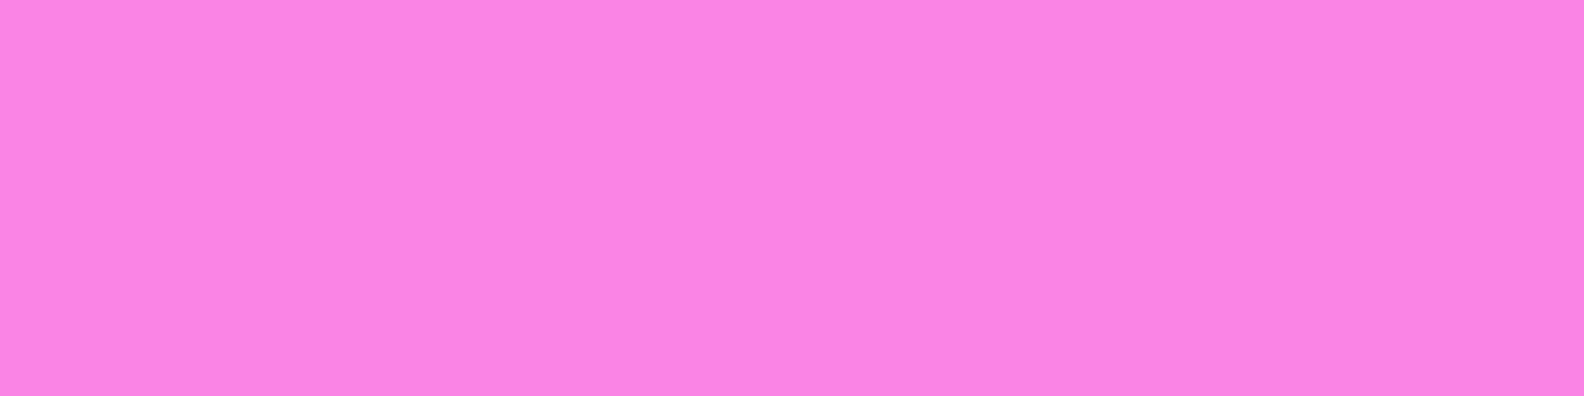 1584x396 Pale Magenta Solid Color Background